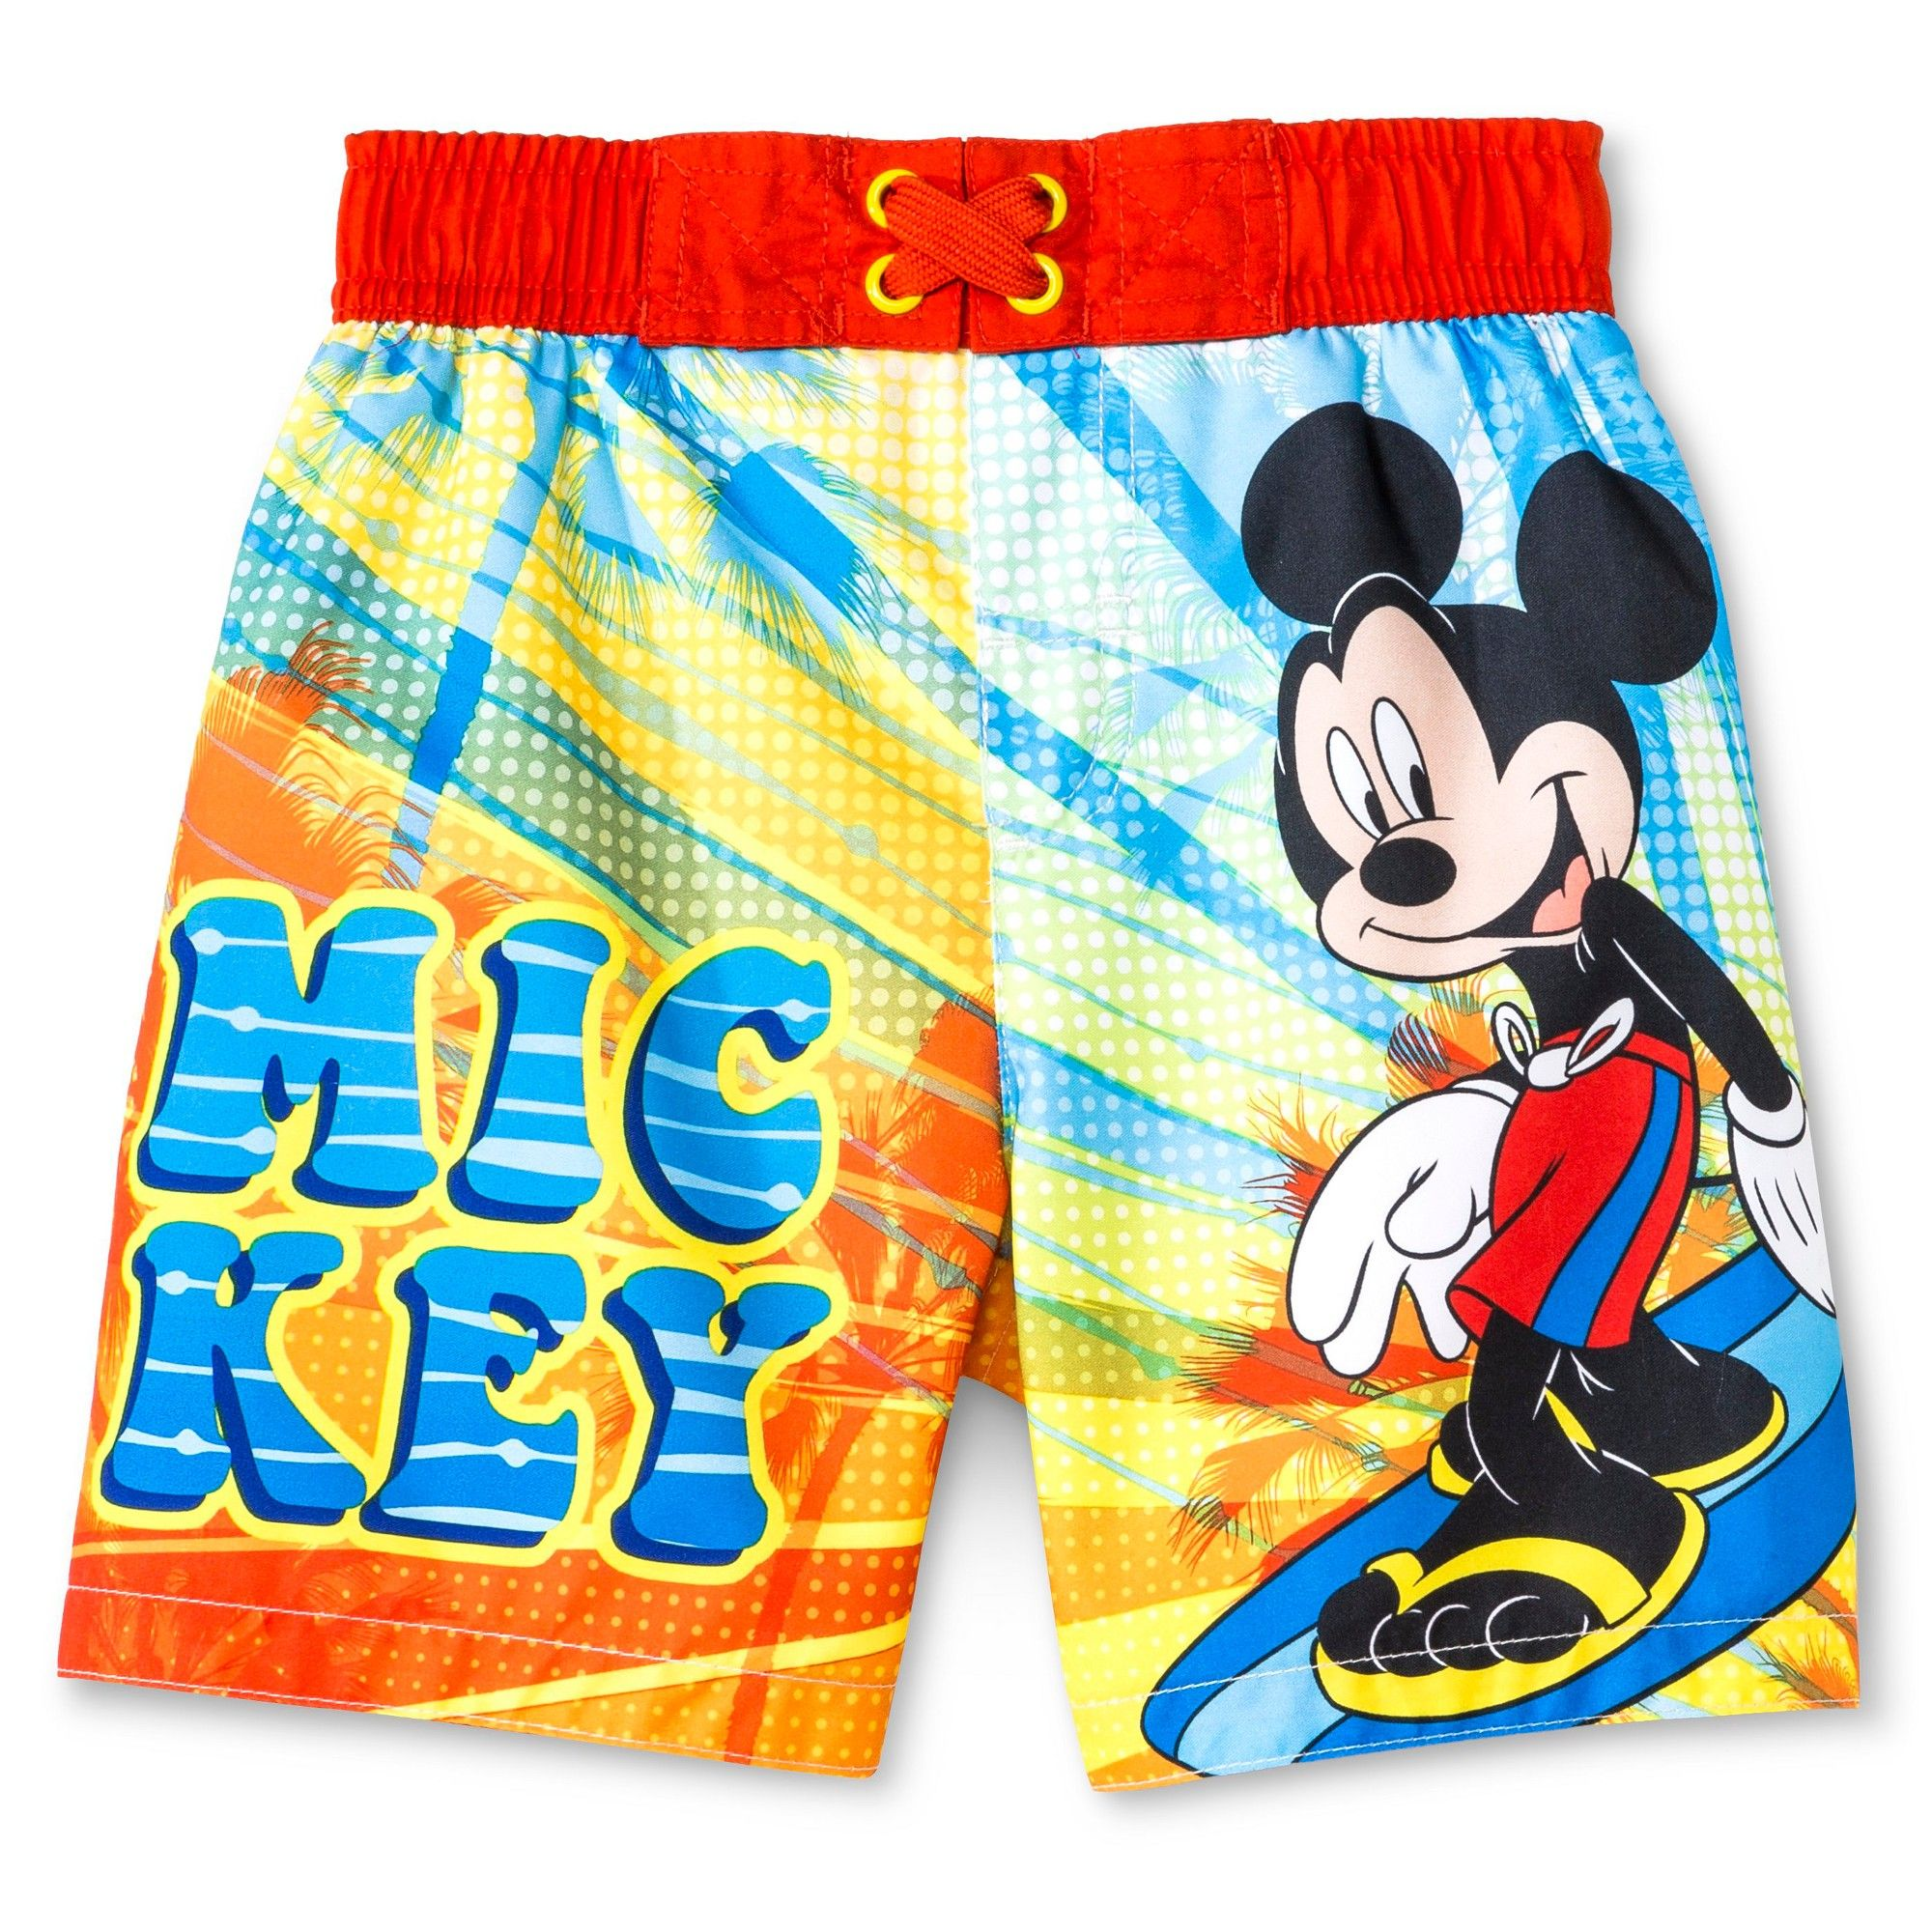 6e85903977 Disney Mickey Mouse Toddler Boys' Swim Trunk - Red 4T | Products ...